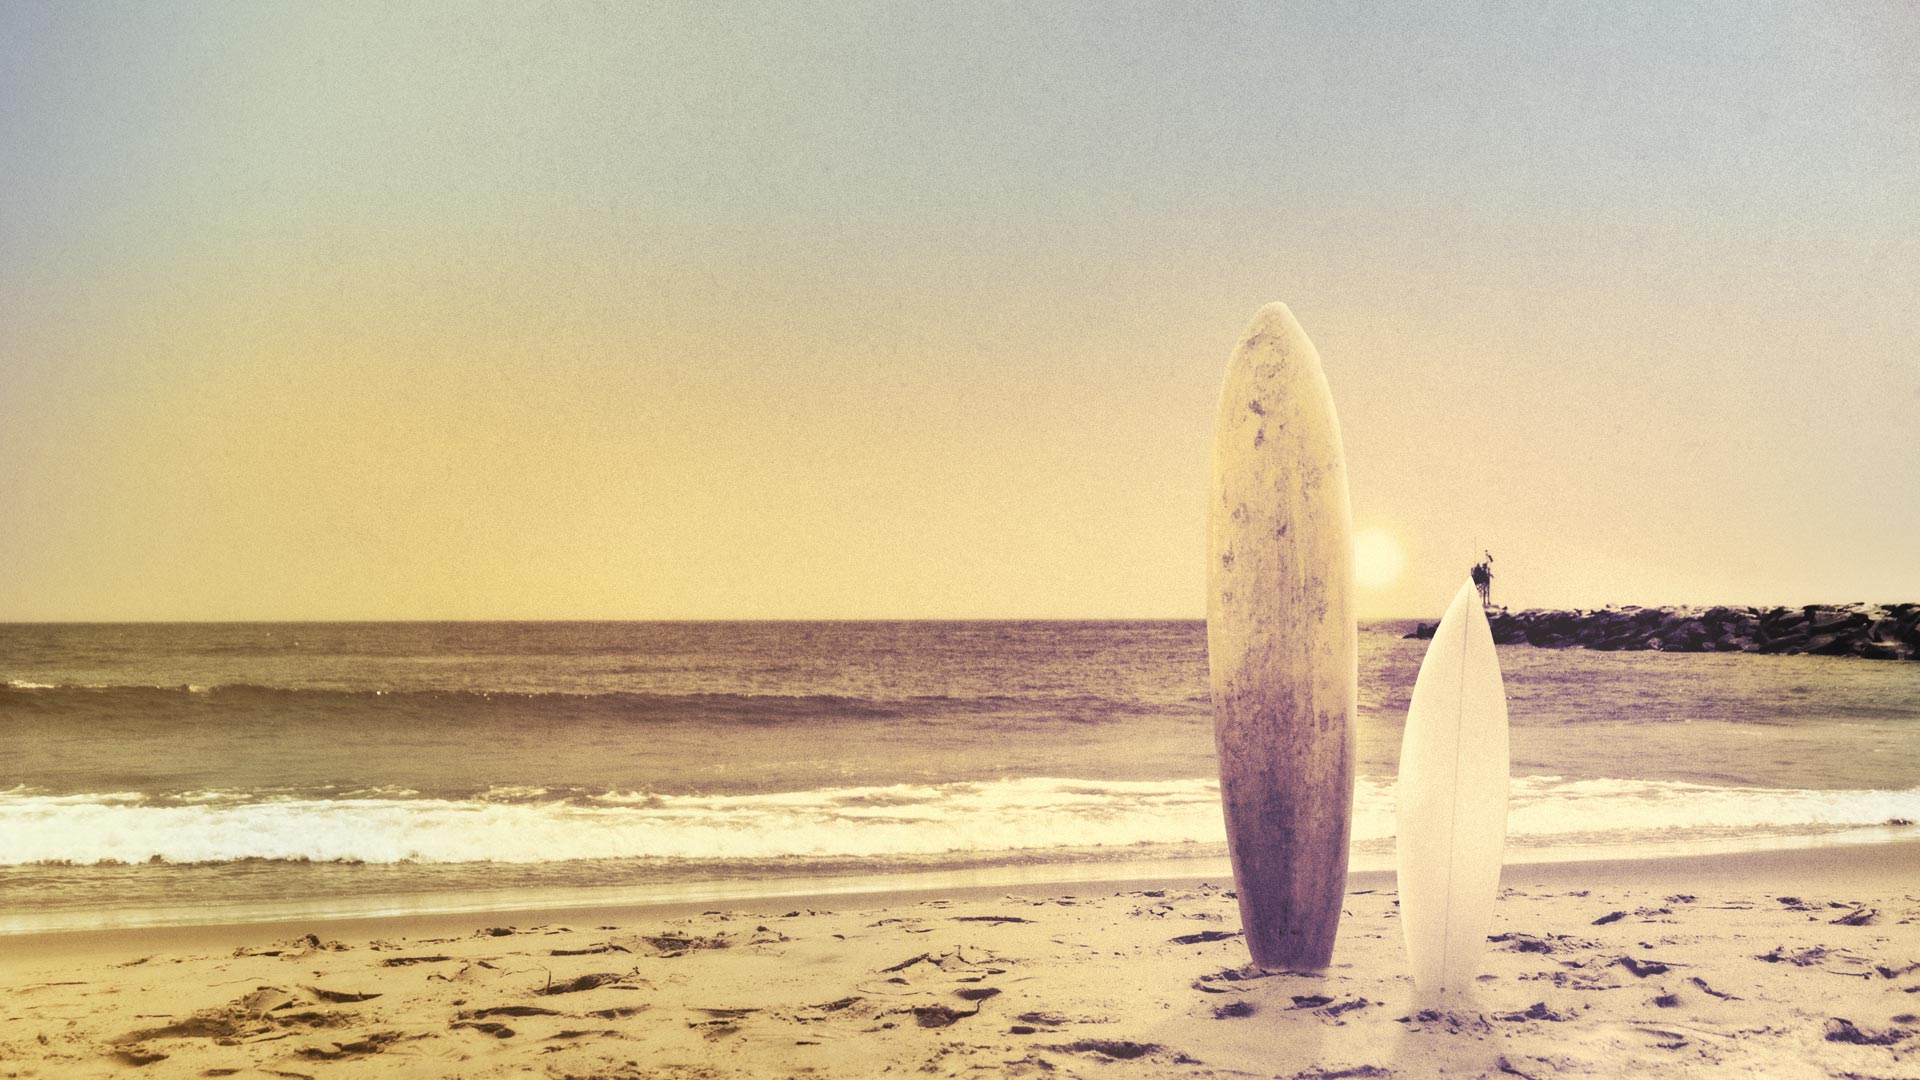 Vintage Surfboard wallpaper Live HD Wallpaper HQ 1920x1080